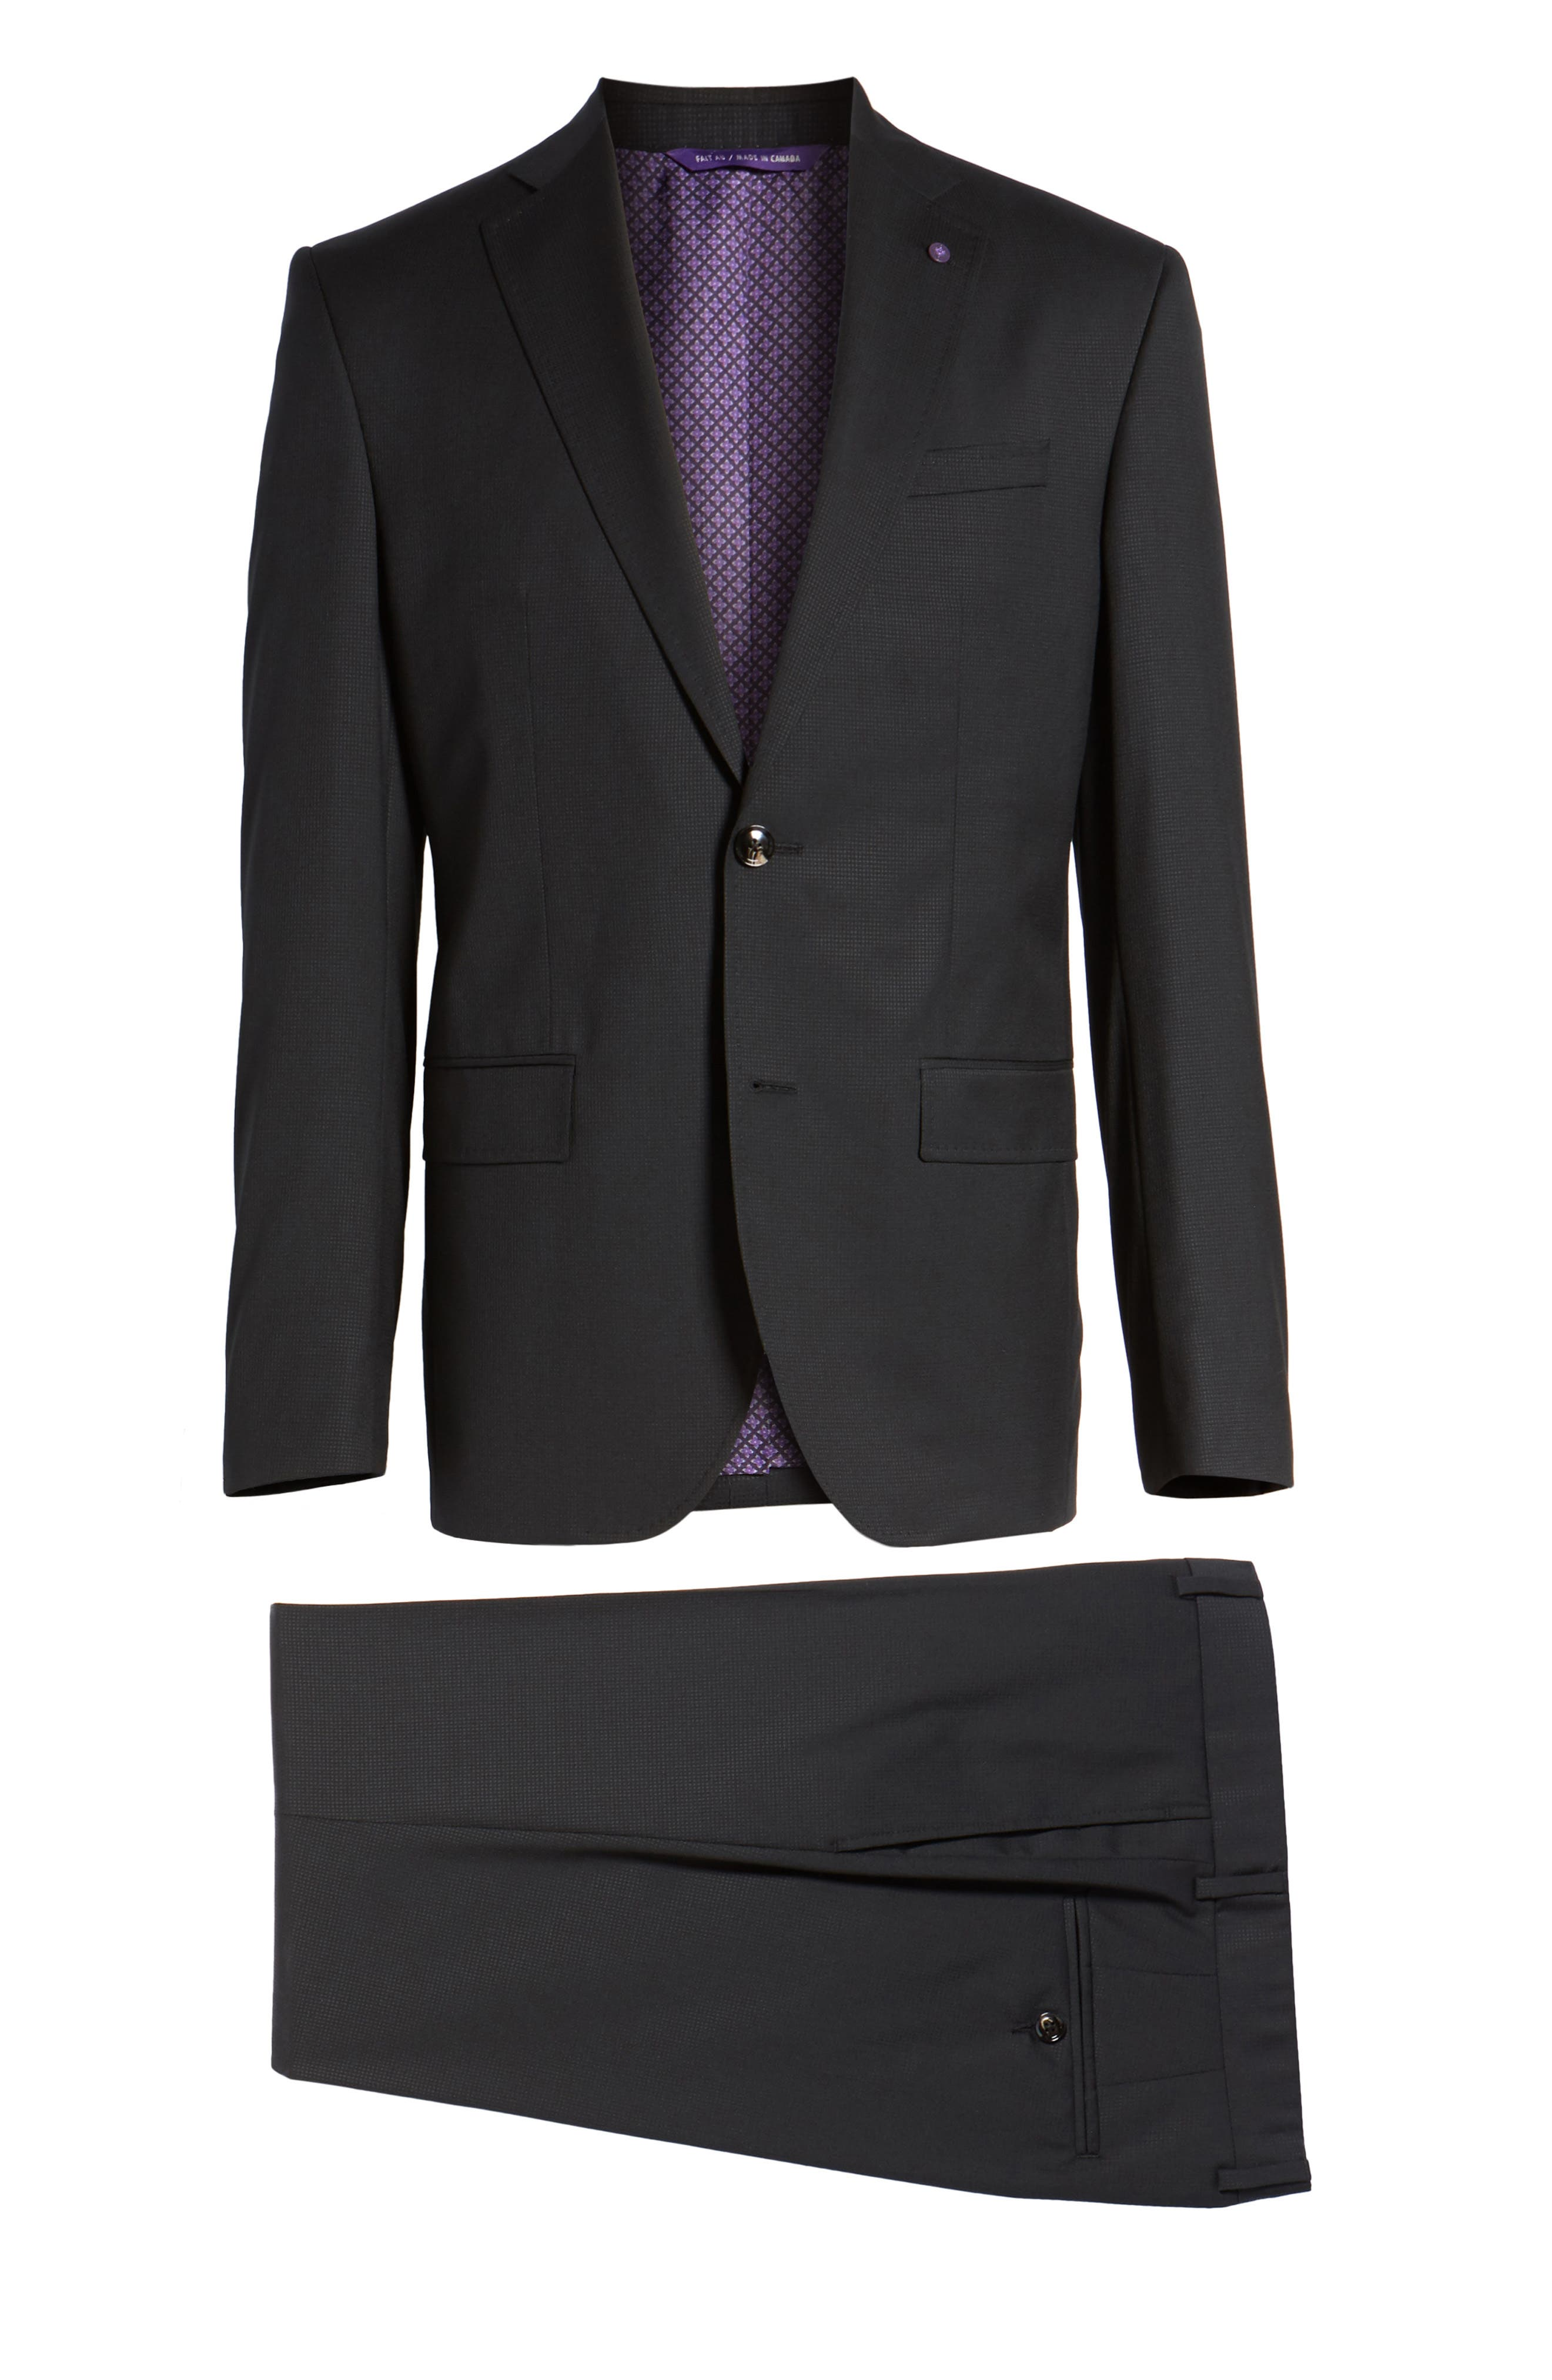 Roger Extra Slim Fit Solid Wool Suit,                             Alternate thumbnail 8, color,                             001